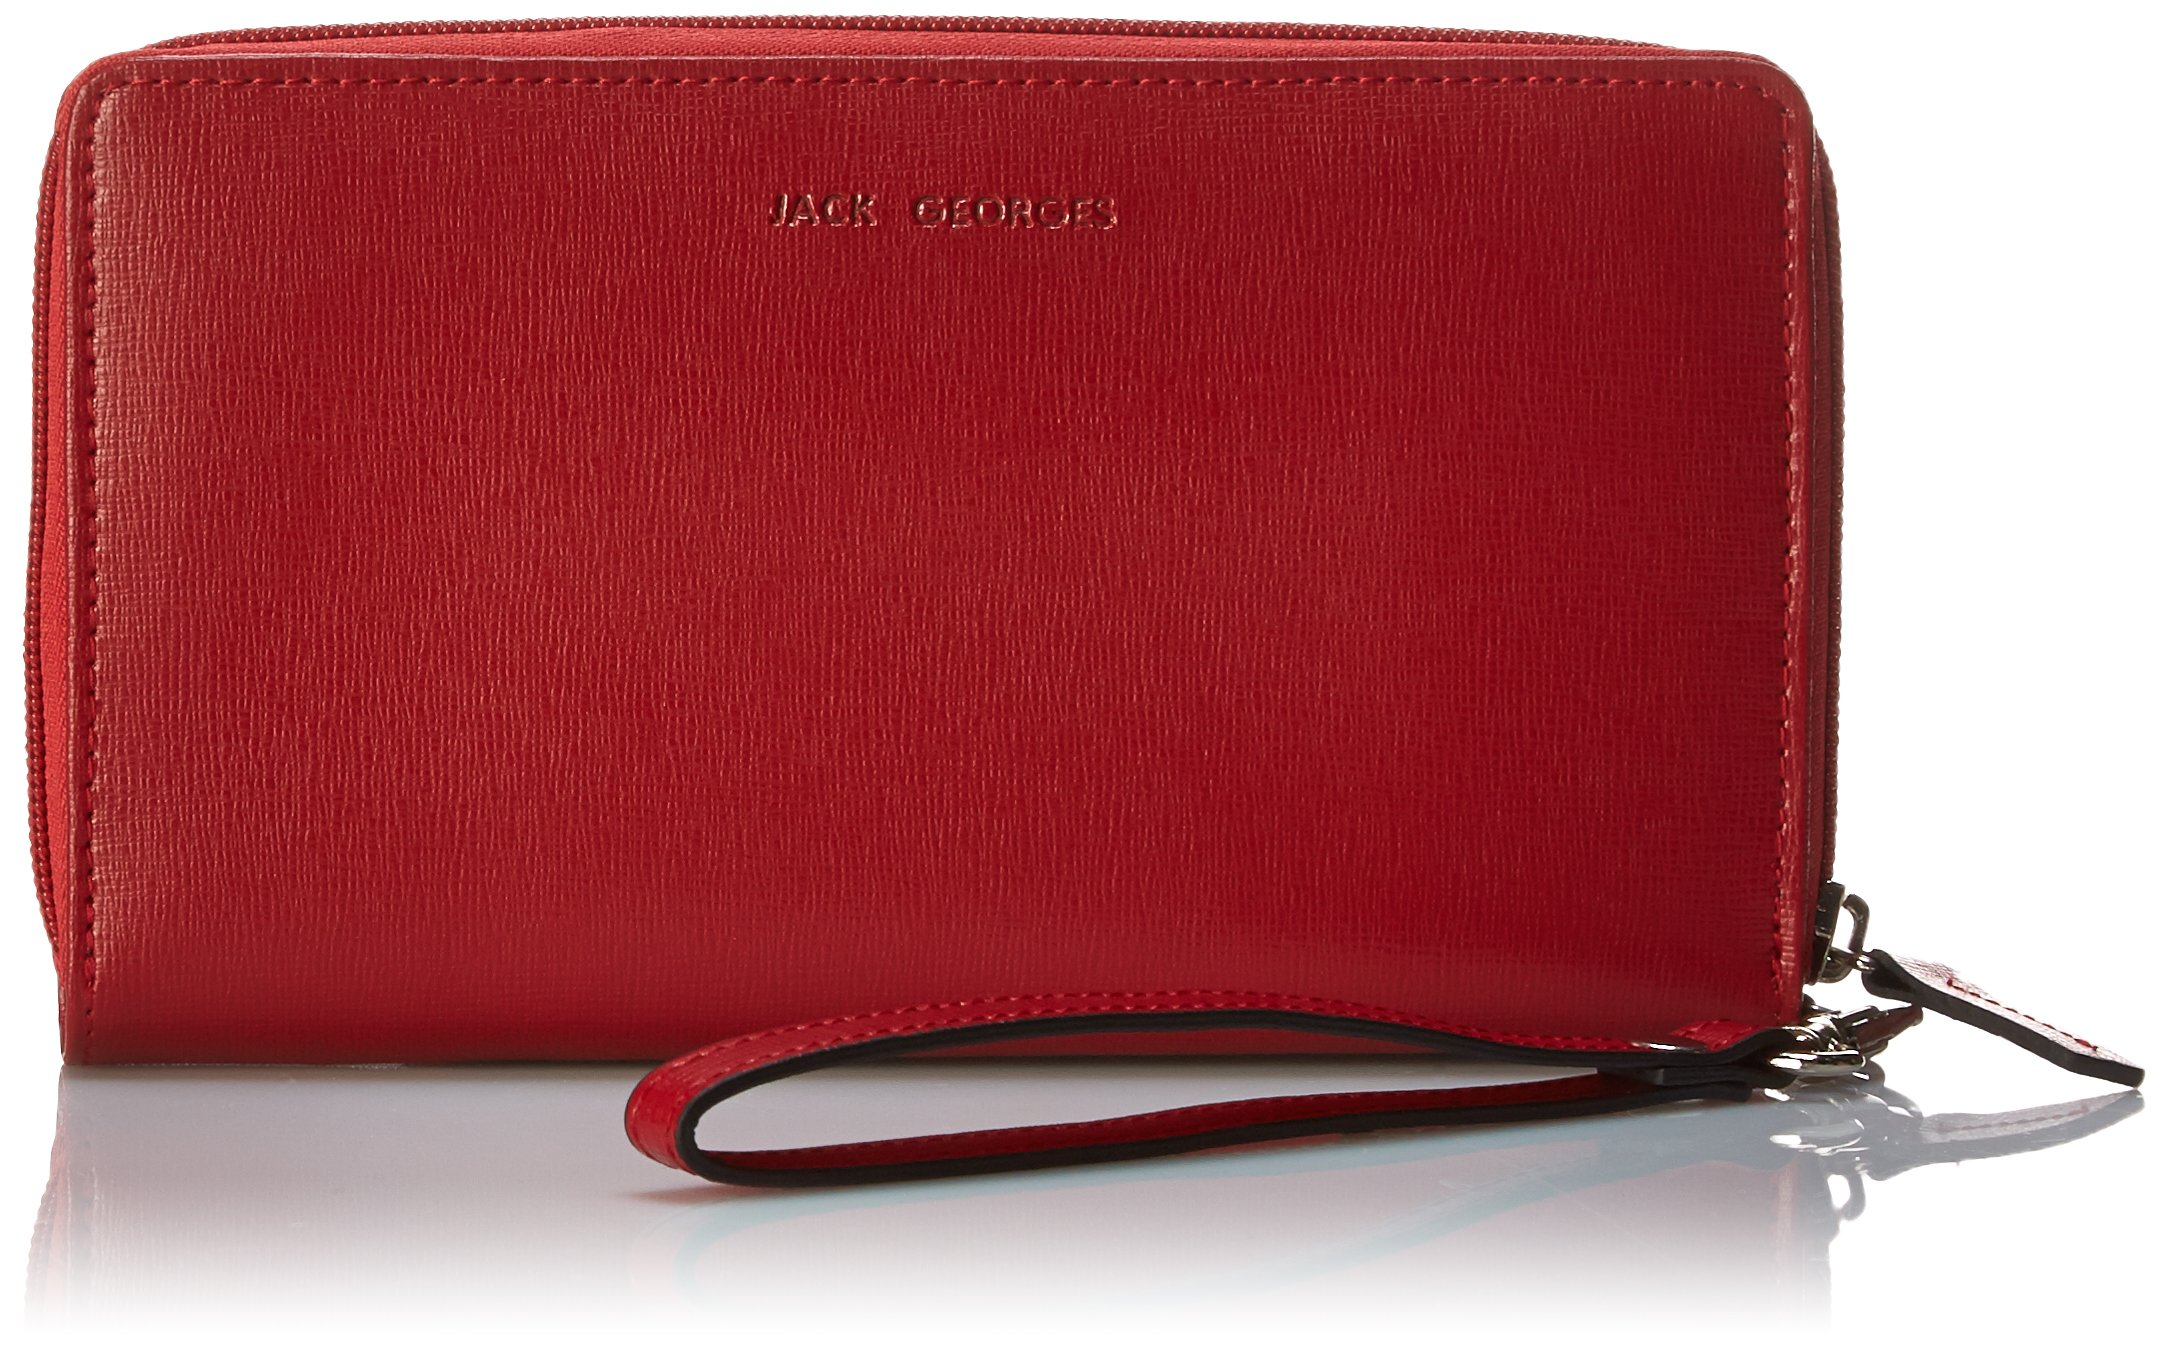 Jack Georges Chelsea 5724, Red, One Size